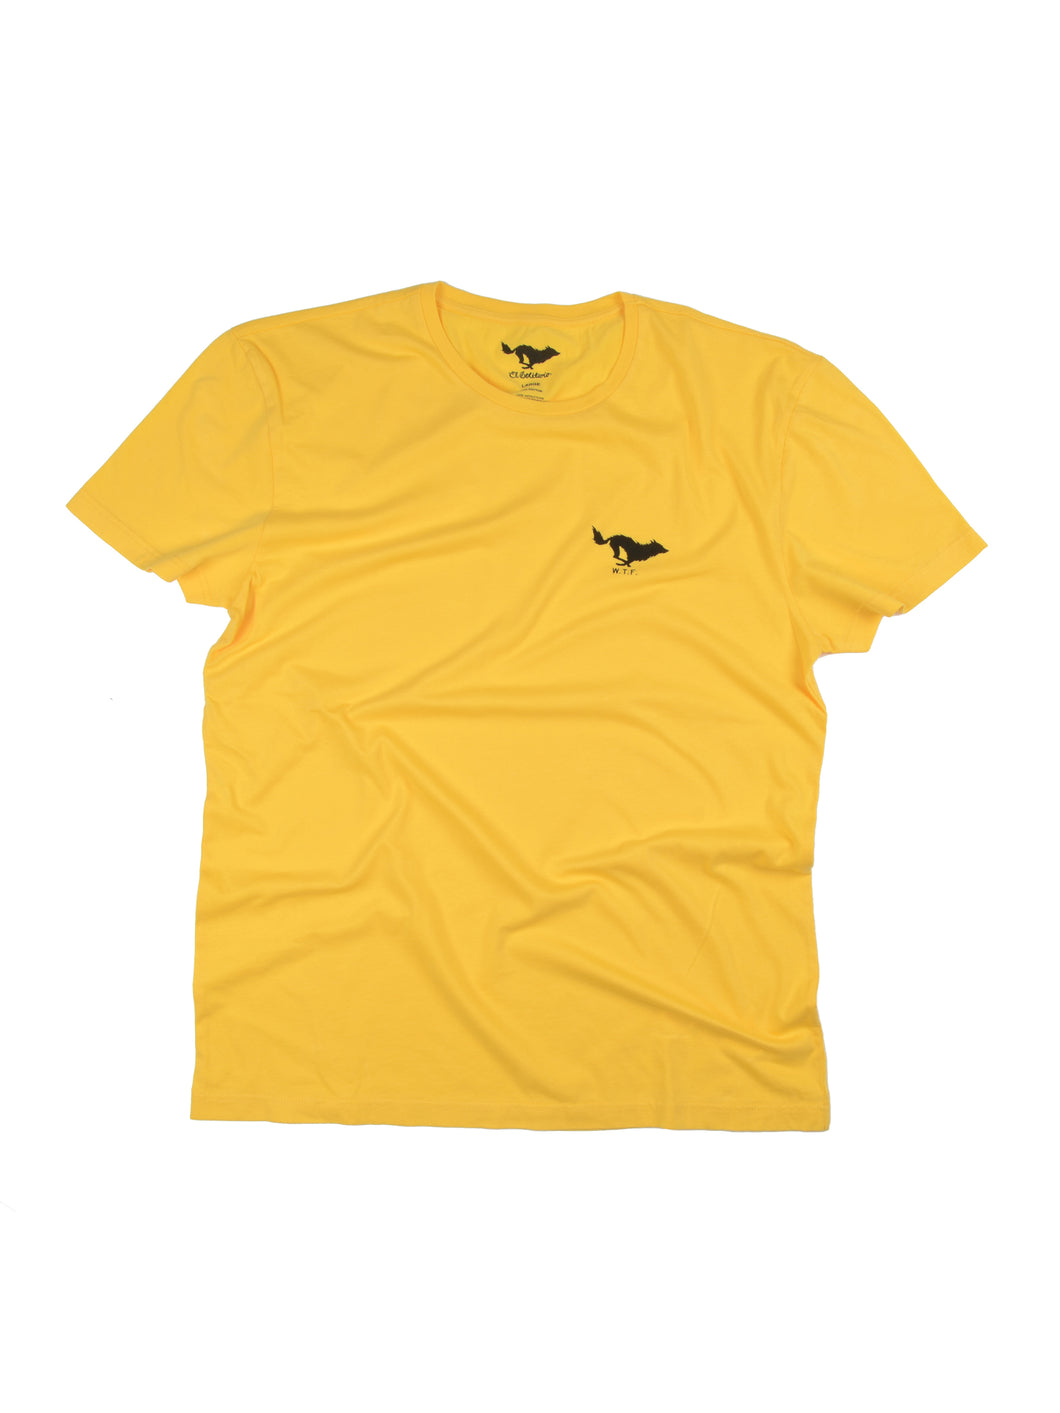 Basic Yellow T-Shirt